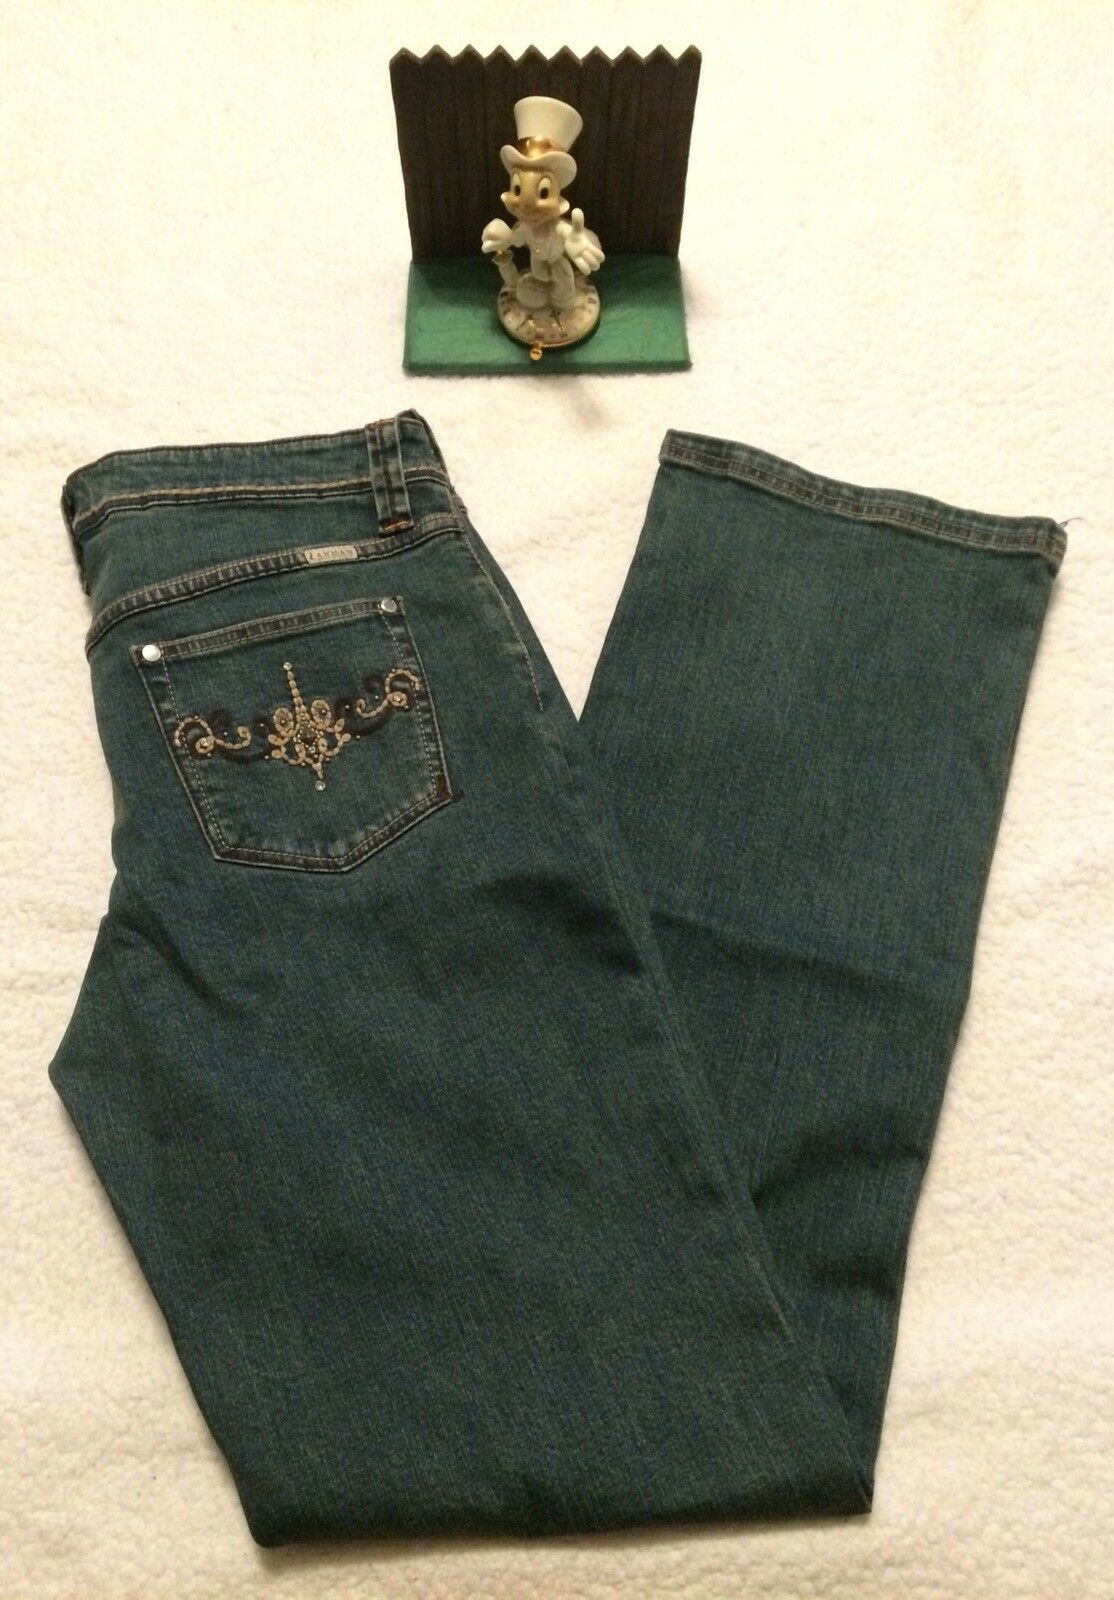 Lawman western style Embroidered women's denim jeans 13 14 straight leg New